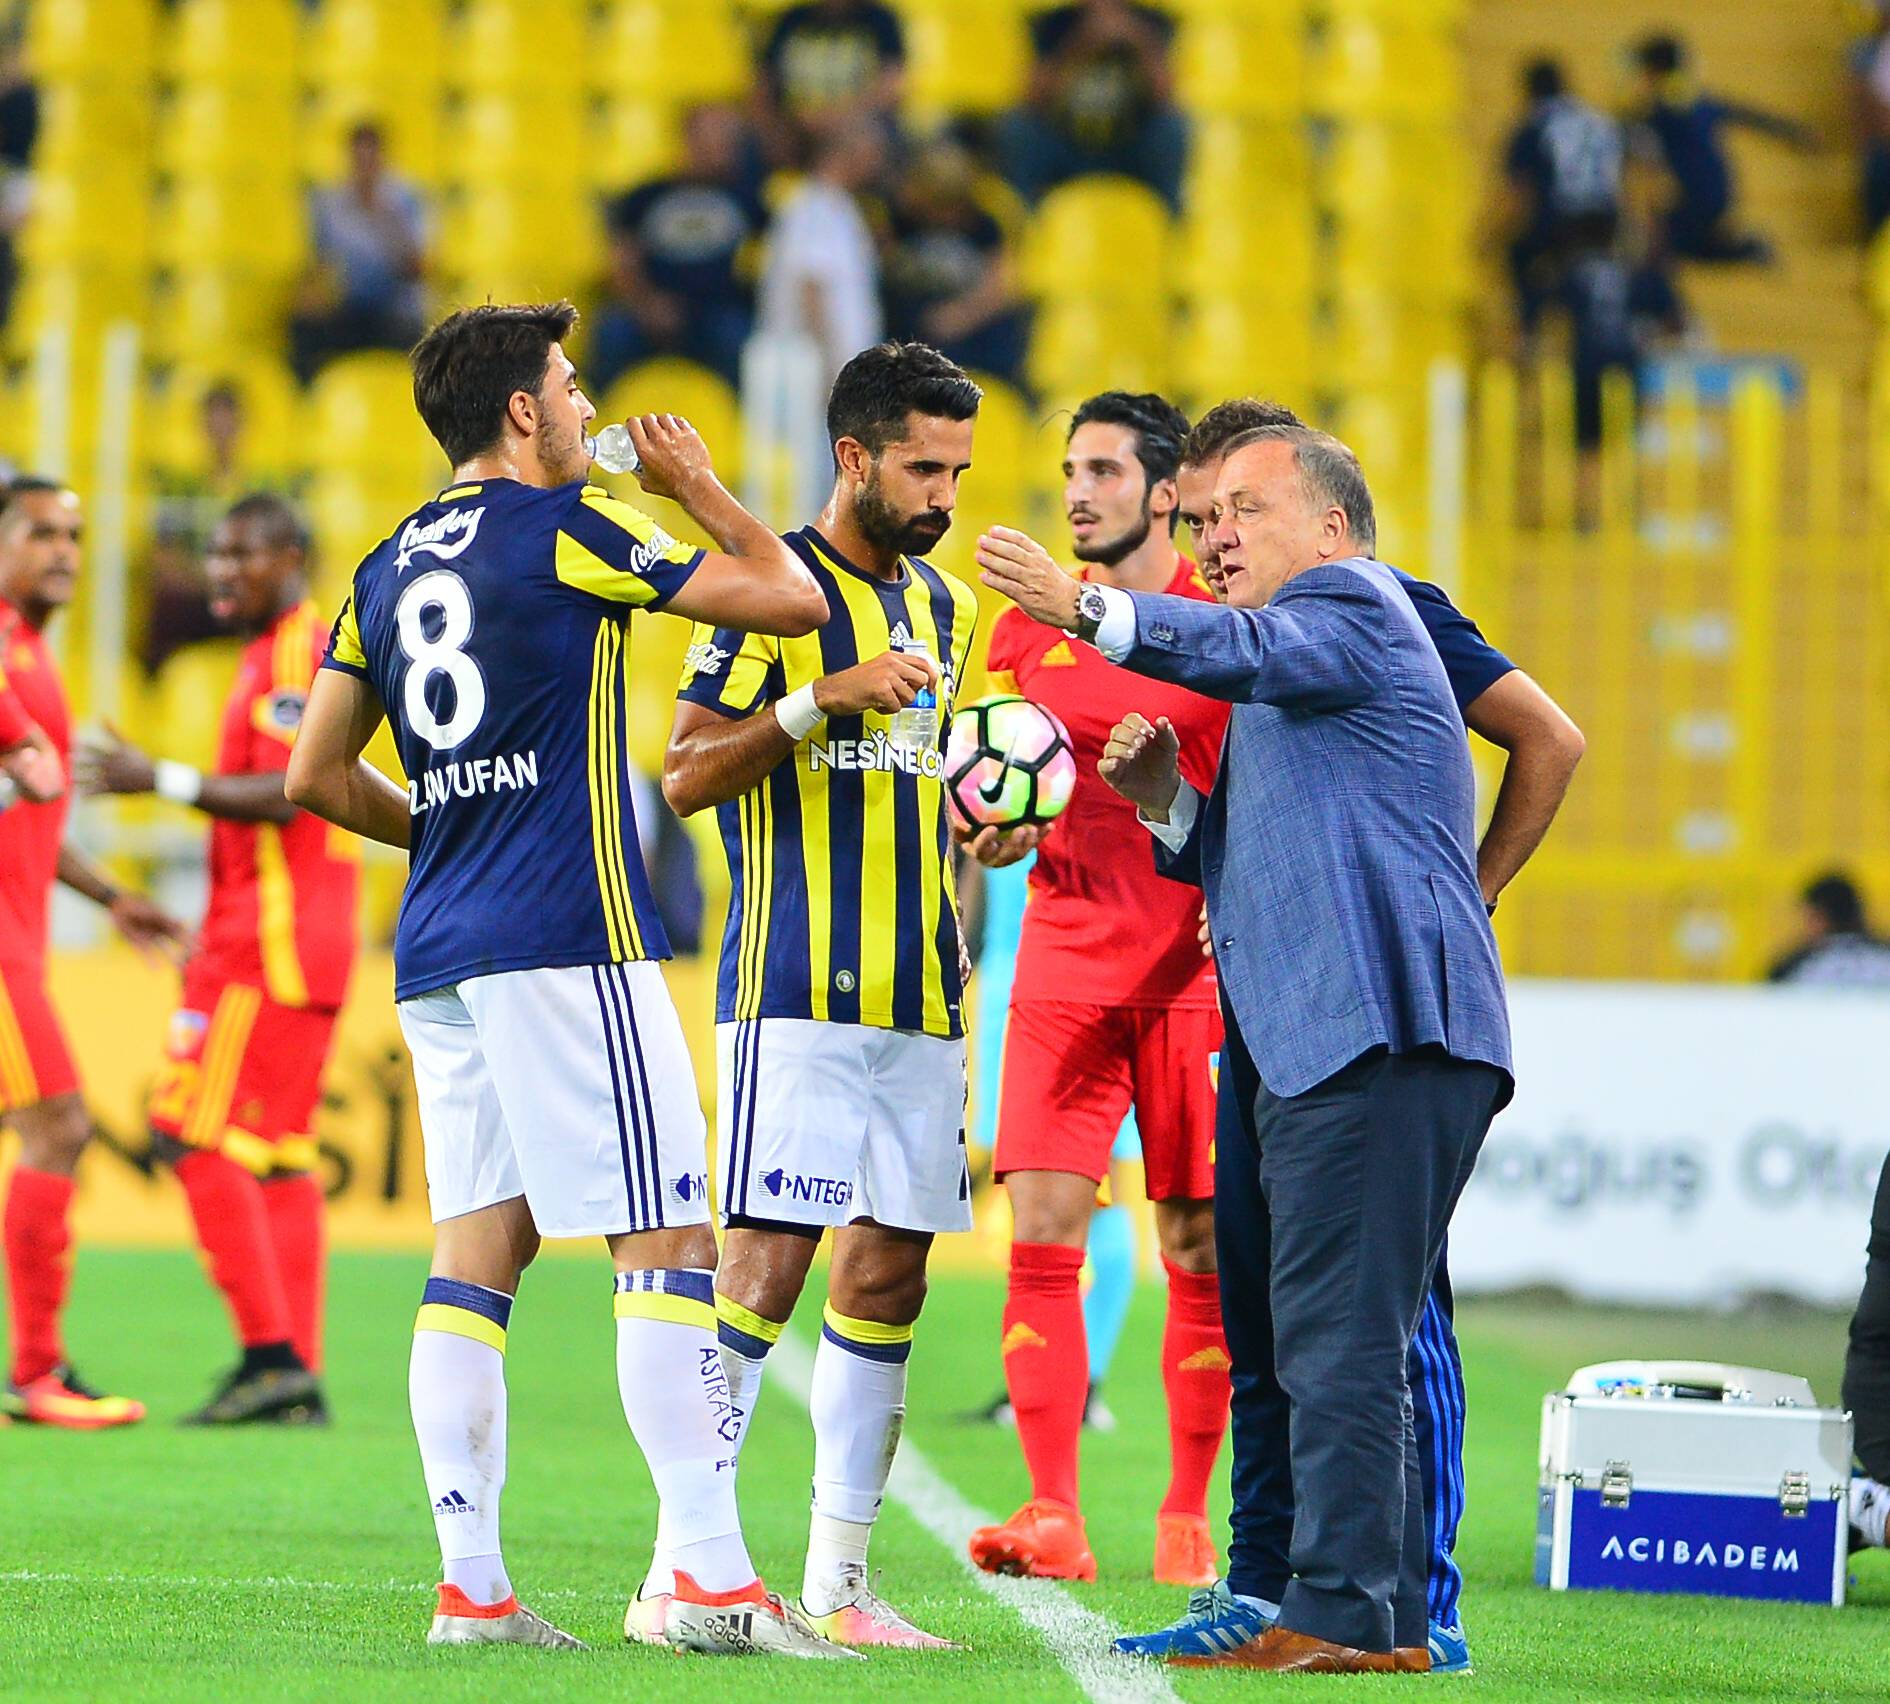 Turkey superlig match between Fenerbahce and Kayserispor at Ulker Stadium in Istanbul , Turkey , August 28 , 2016. Pictured: Coach Dick Advocaat , Ozan Tufan and Alper Potuk of Fenerbahce . PUBLICATIONxNOTxINxTURTurkey Superlig Match between Fenerbahce and Kayserispor AT Ulker Stage in Istanbul Turkey August 28 2016 Pictured Coach Thick Advocaat Ozan Tufan and Alper Potuk of Fenerbahce PUBLICATIONxNOTxINxTUR